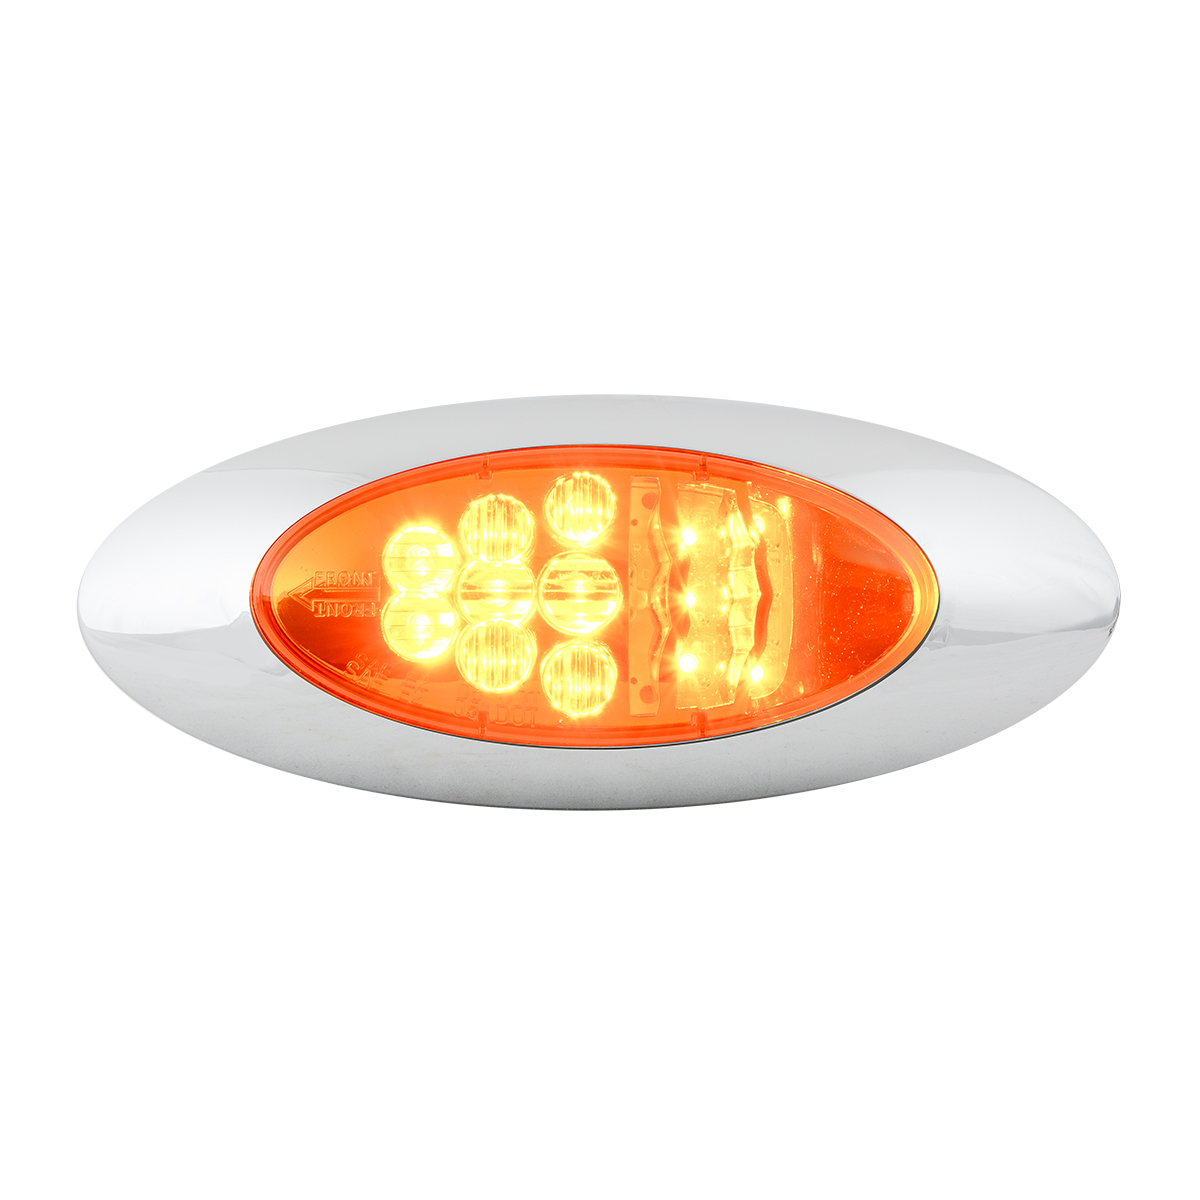 77270 Y2K LED Turn/Marker Light with Chrome Bezel in Amber/Amber